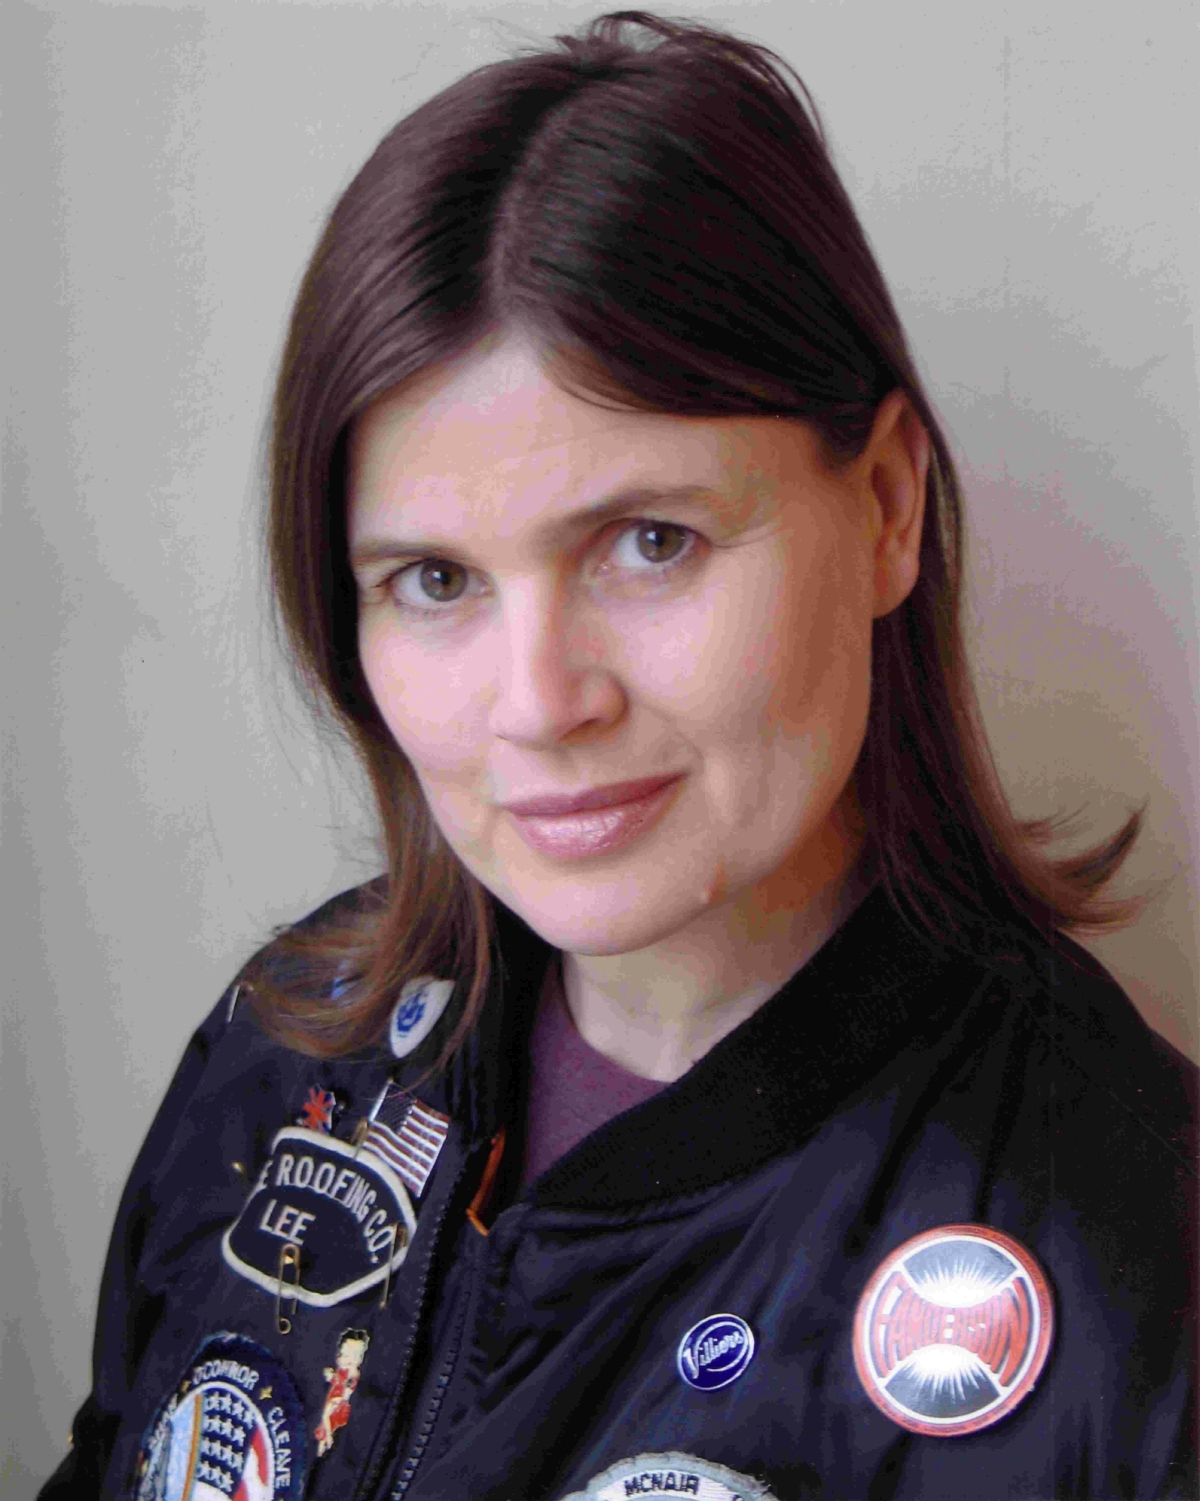 sophie aldred official website